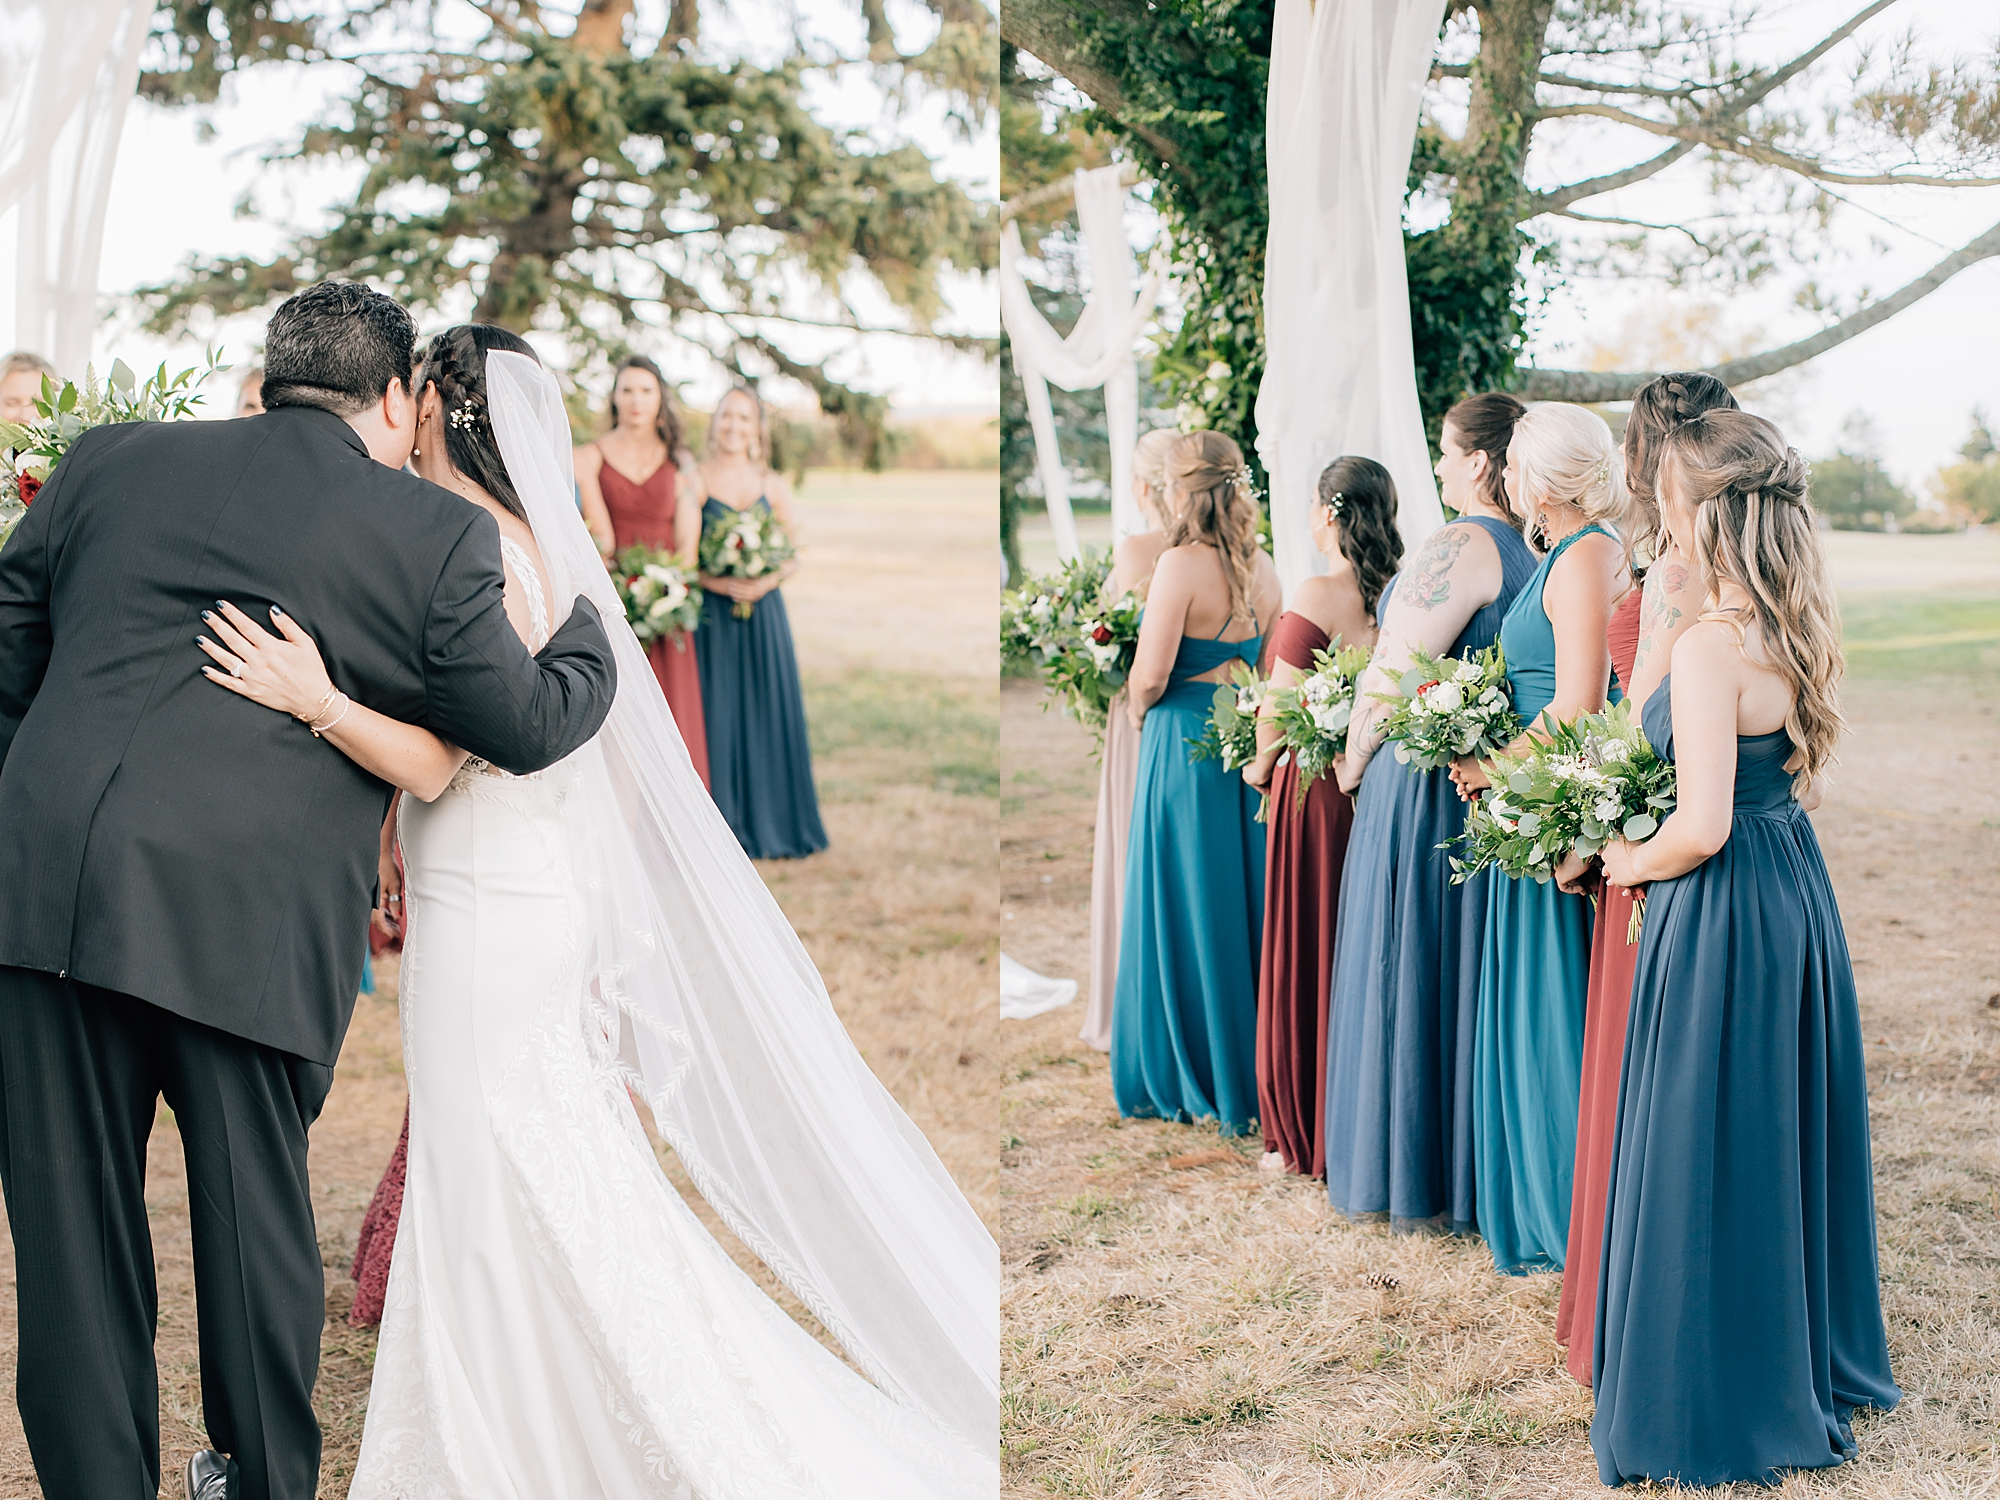 Linwood Country Club Film Wedding Photography by Magdalena Studios South Jersey Wedding Photographer 18